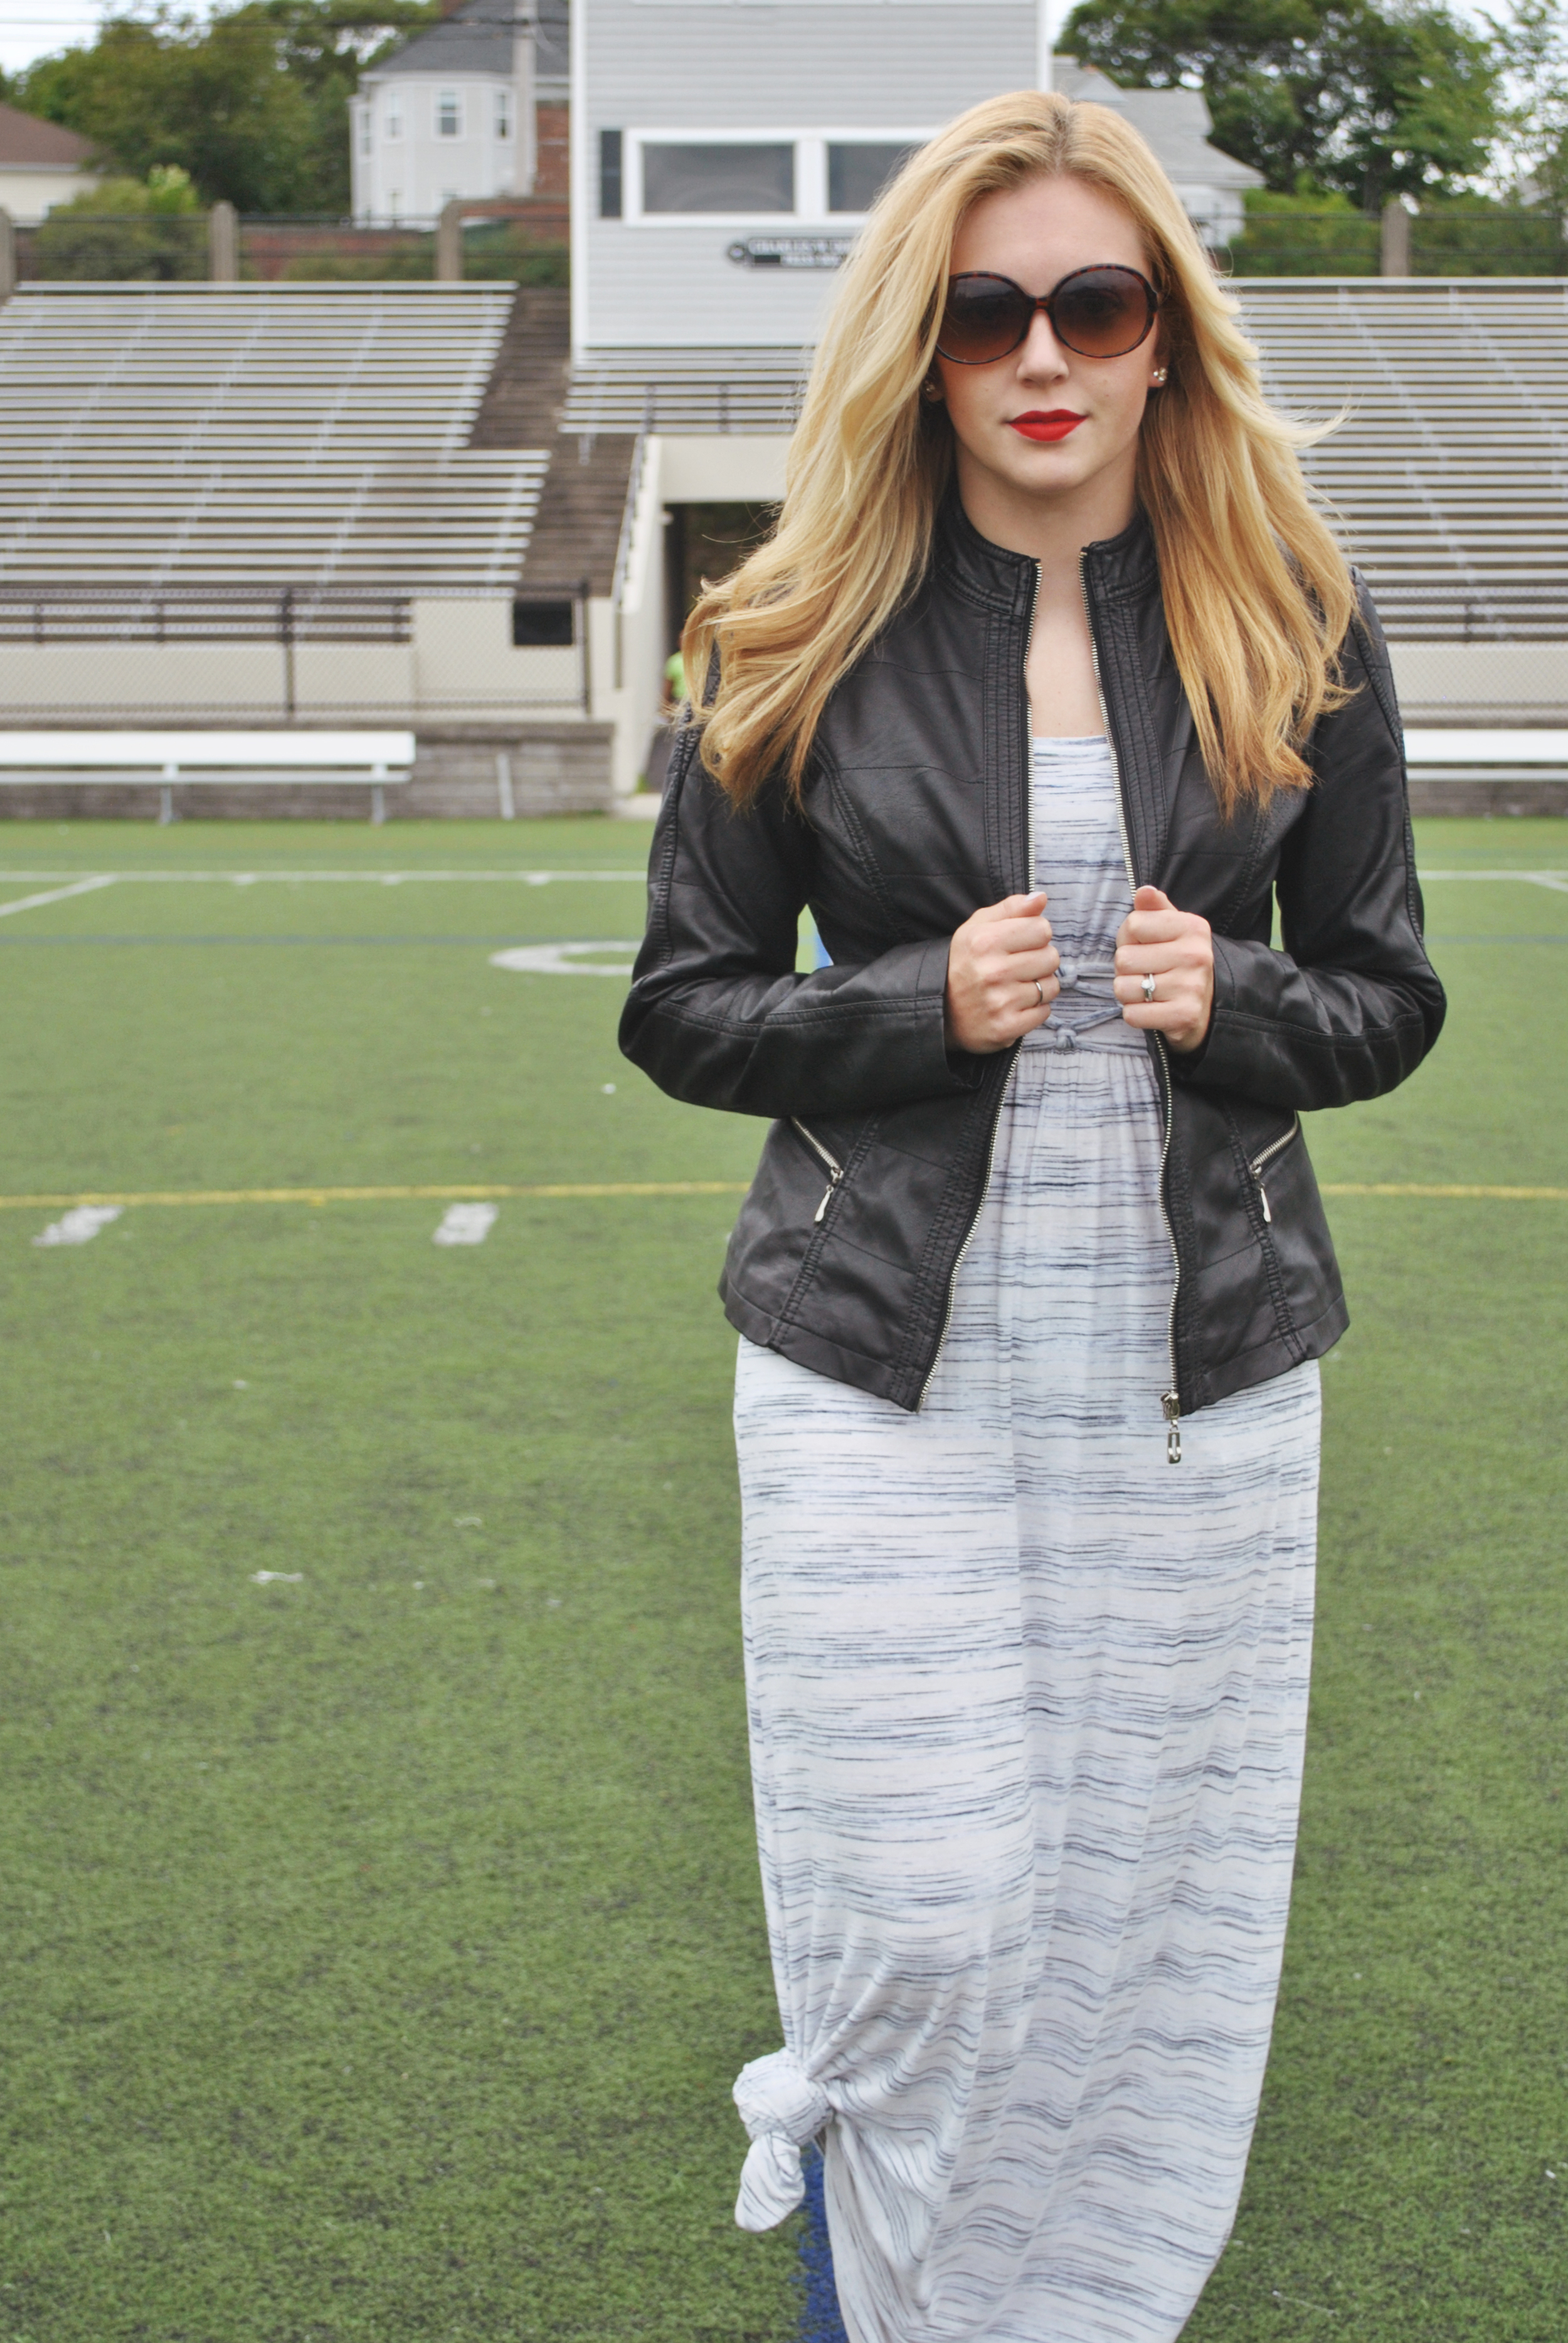 thoughtfulwish | leather jacket // maxi dress outfit // fall outfit // back to school outfit // fashion // red lips // stila // leather jacket with dress